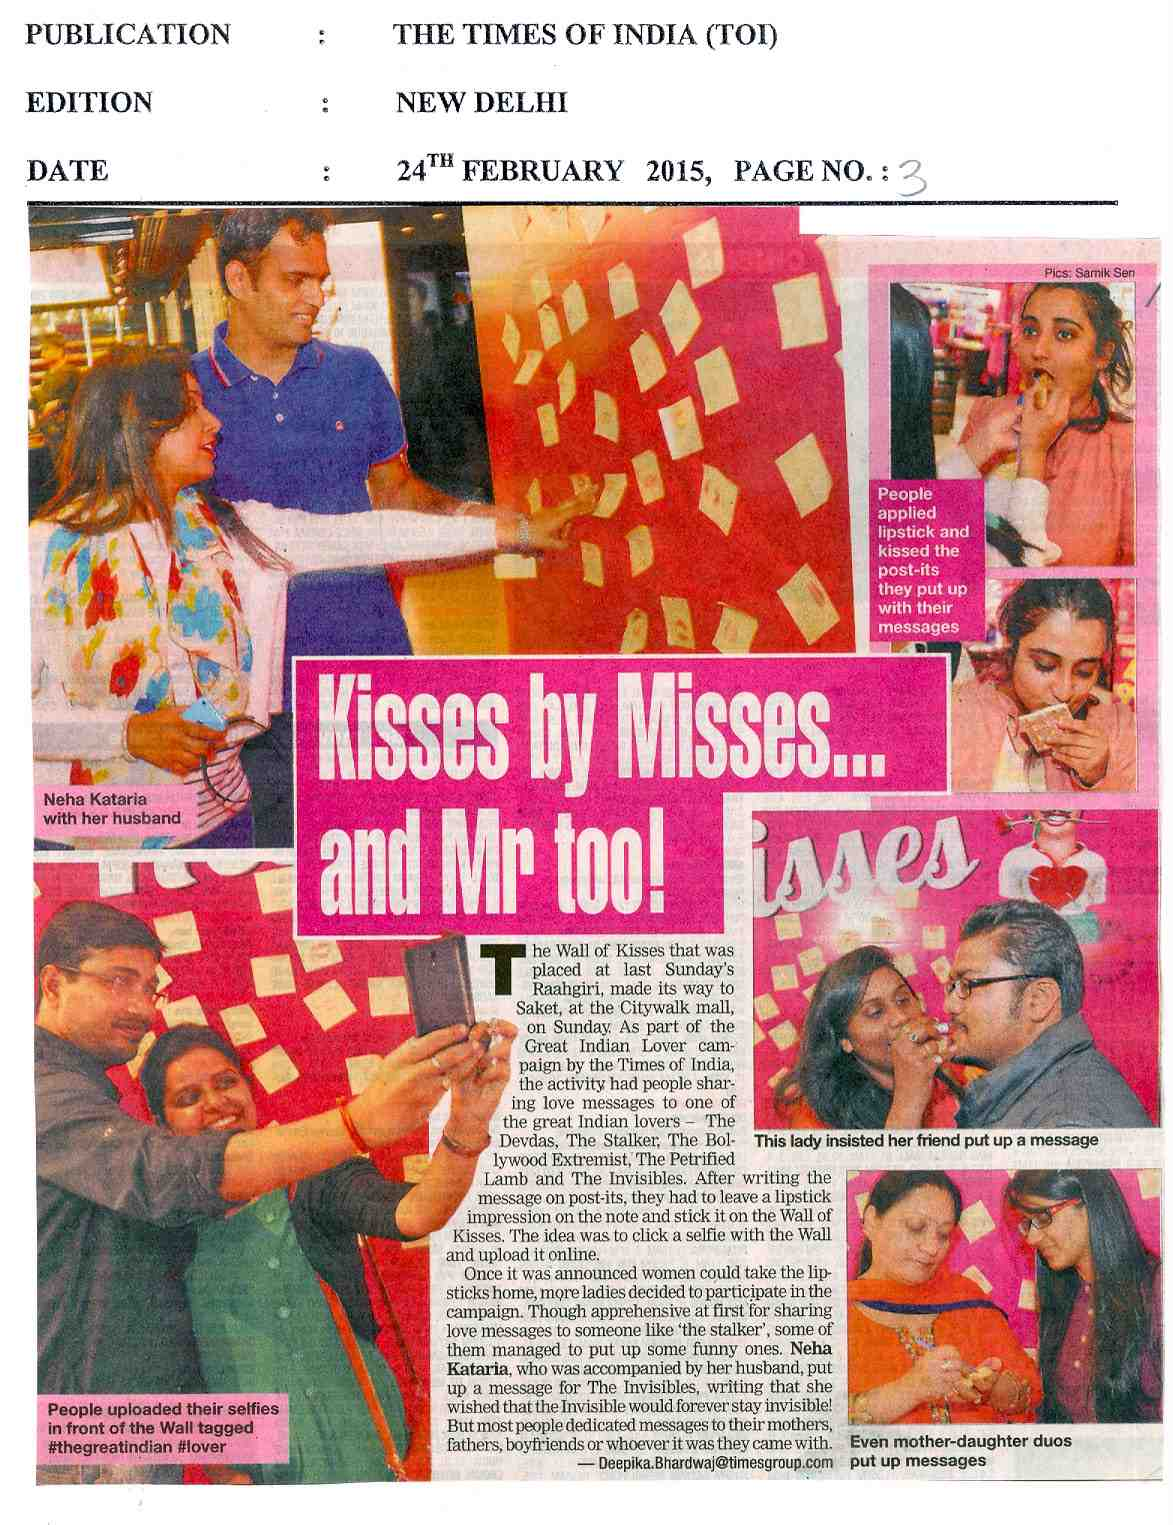 Kisses Misses... and Mr too!